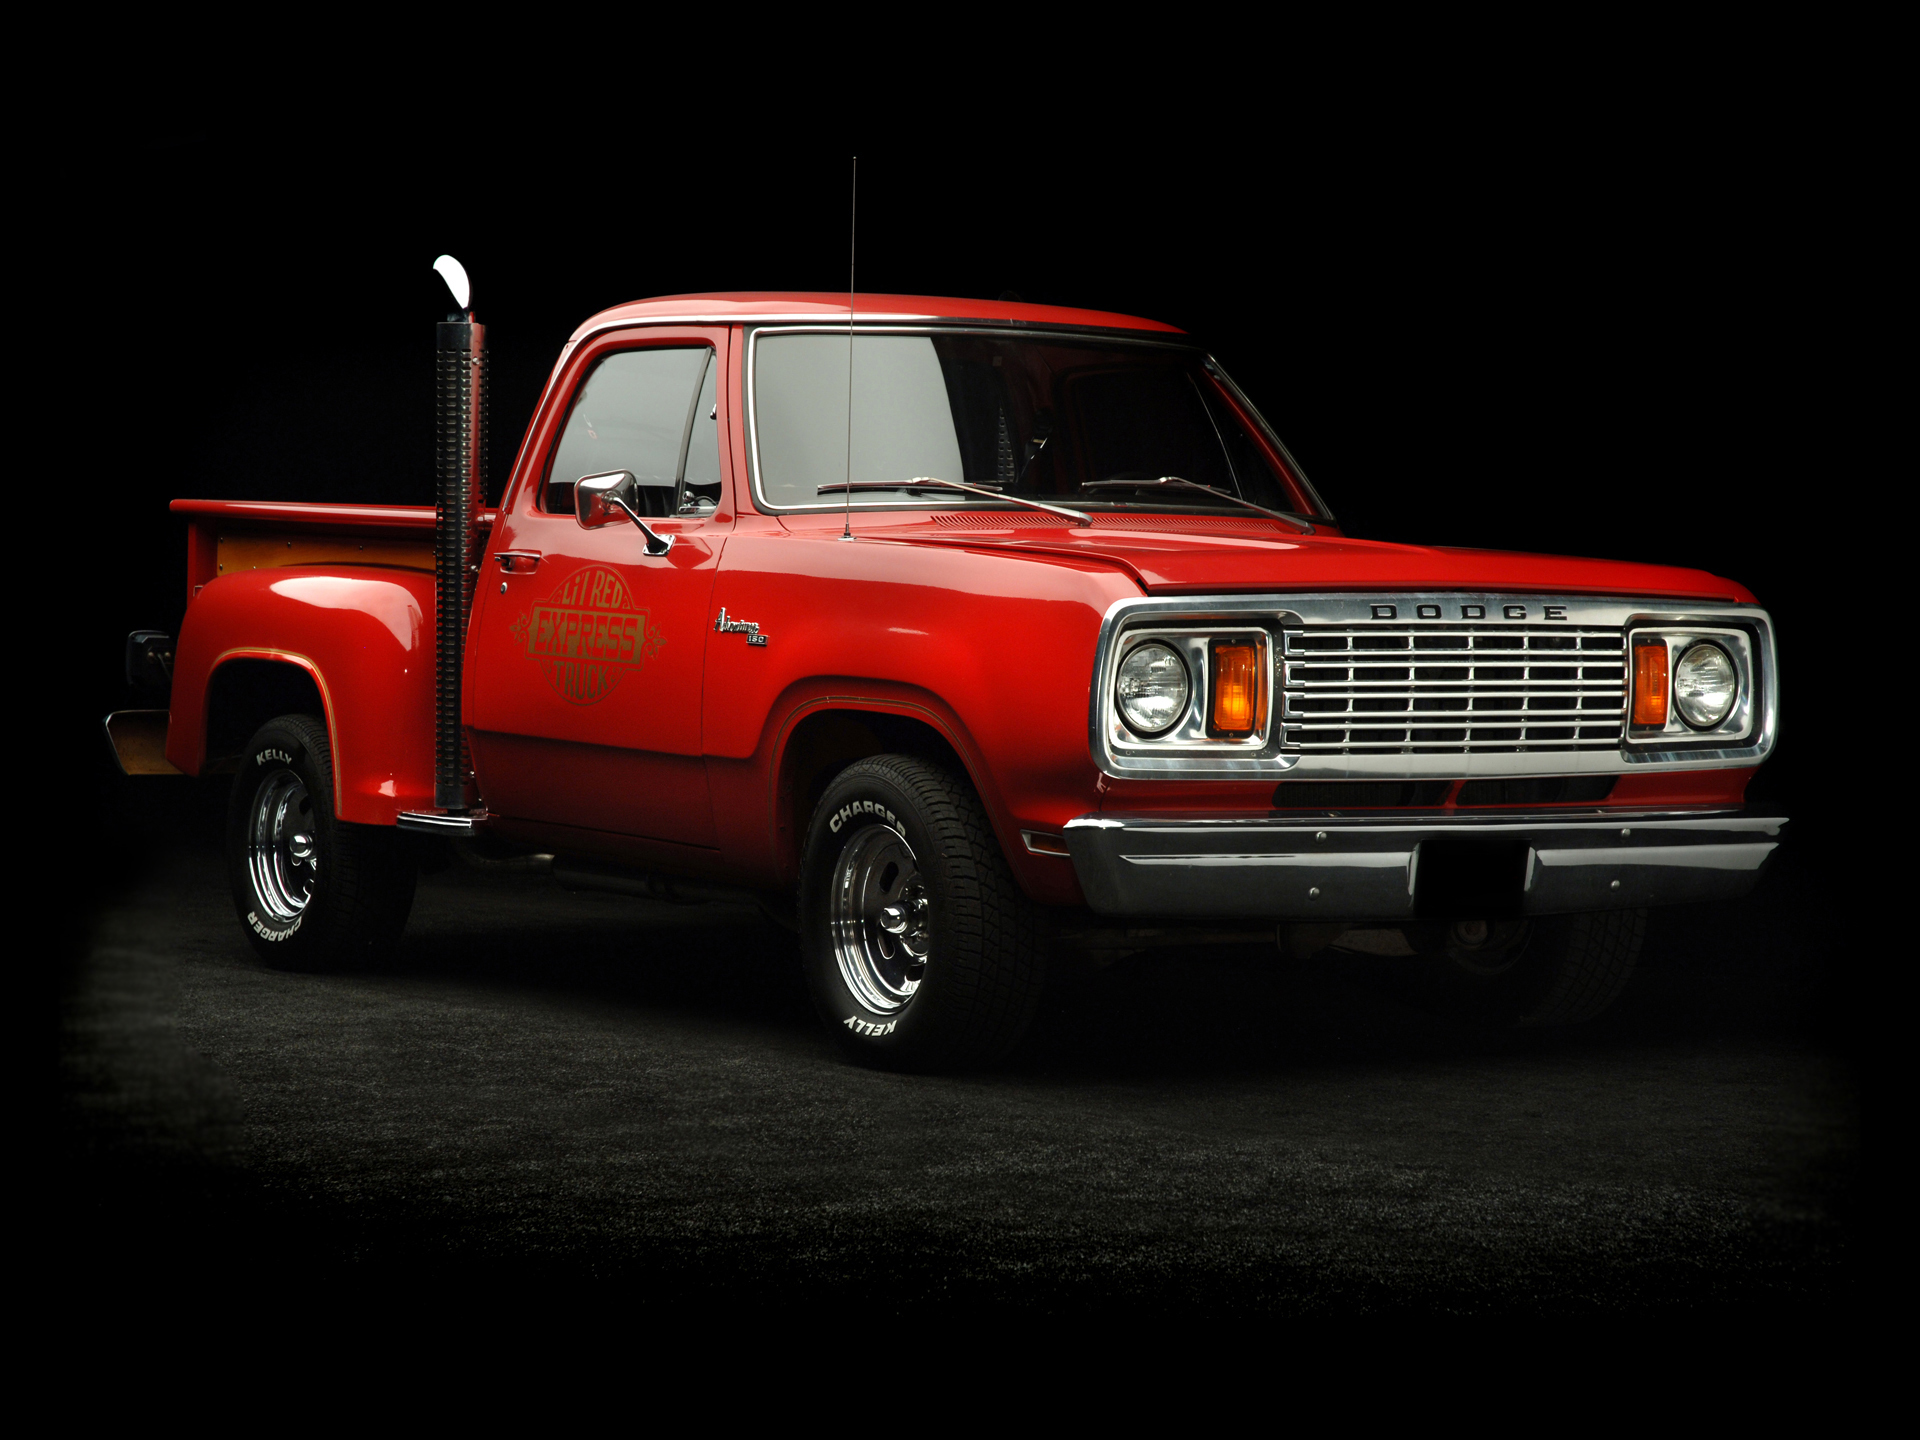 Classic Truck Wallpapers 9319   Amazing Wallpaperz 1920x1440